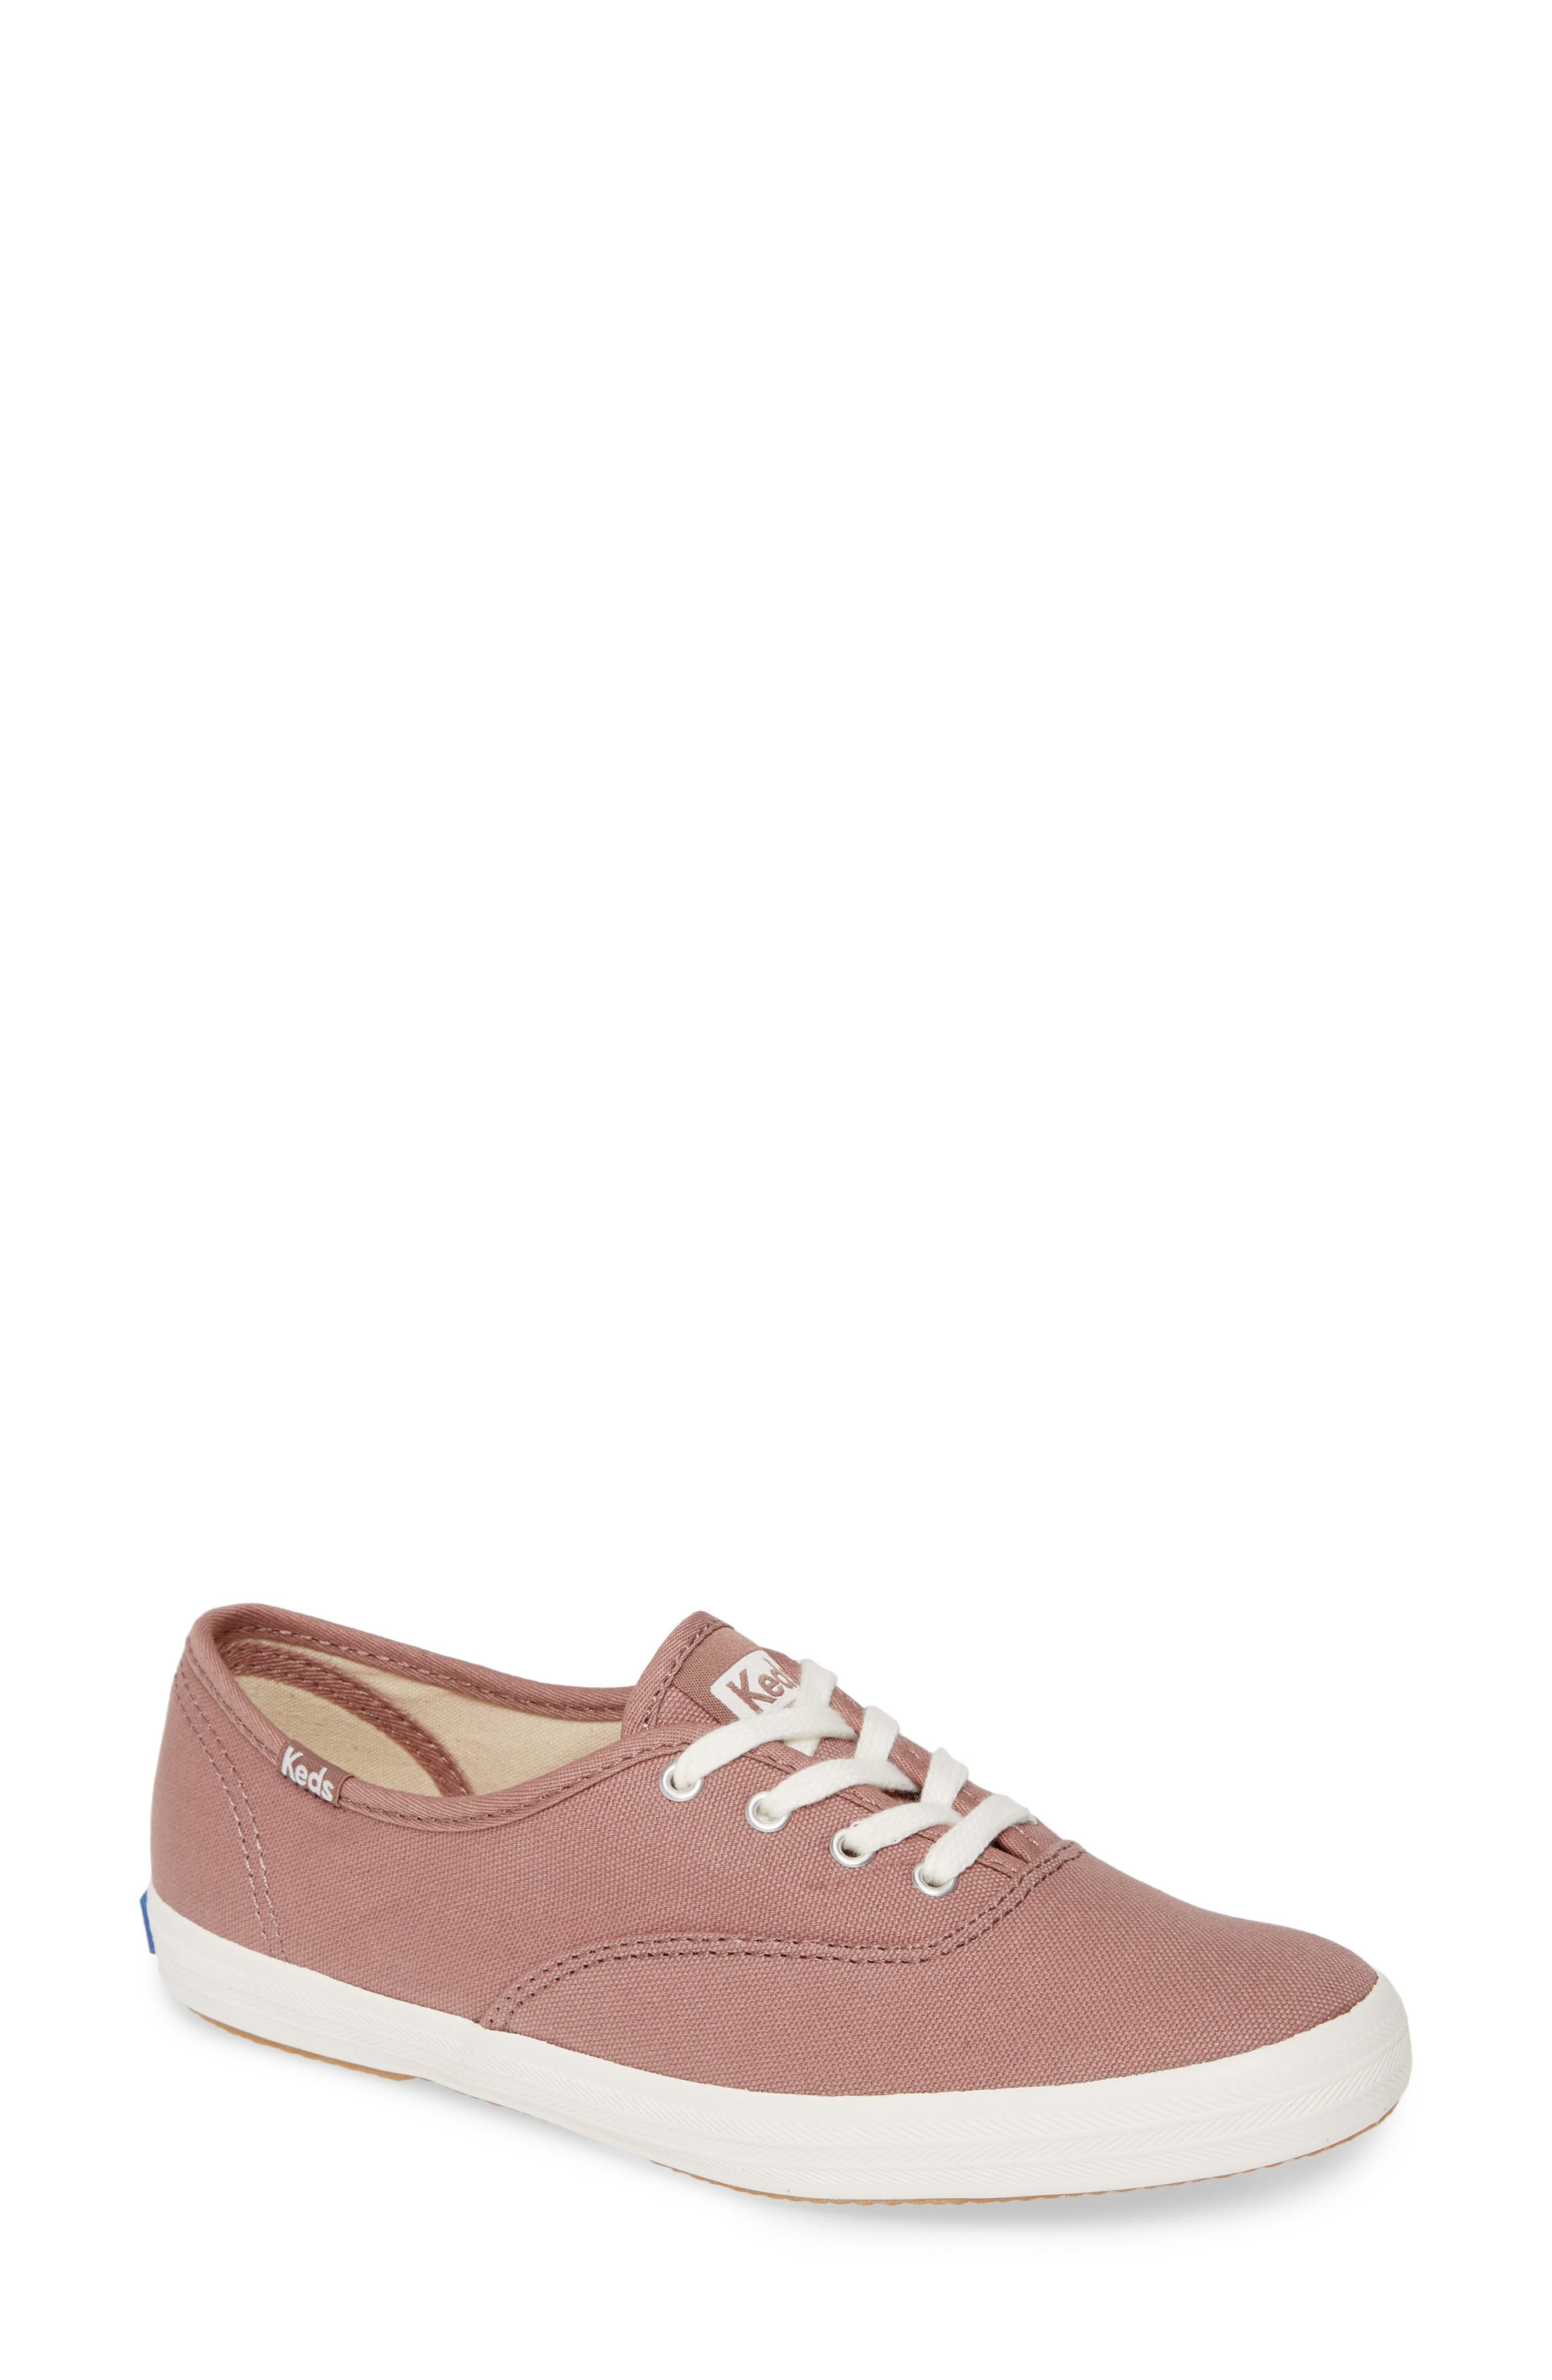 Keds Champion Solid Sneaker, Pink